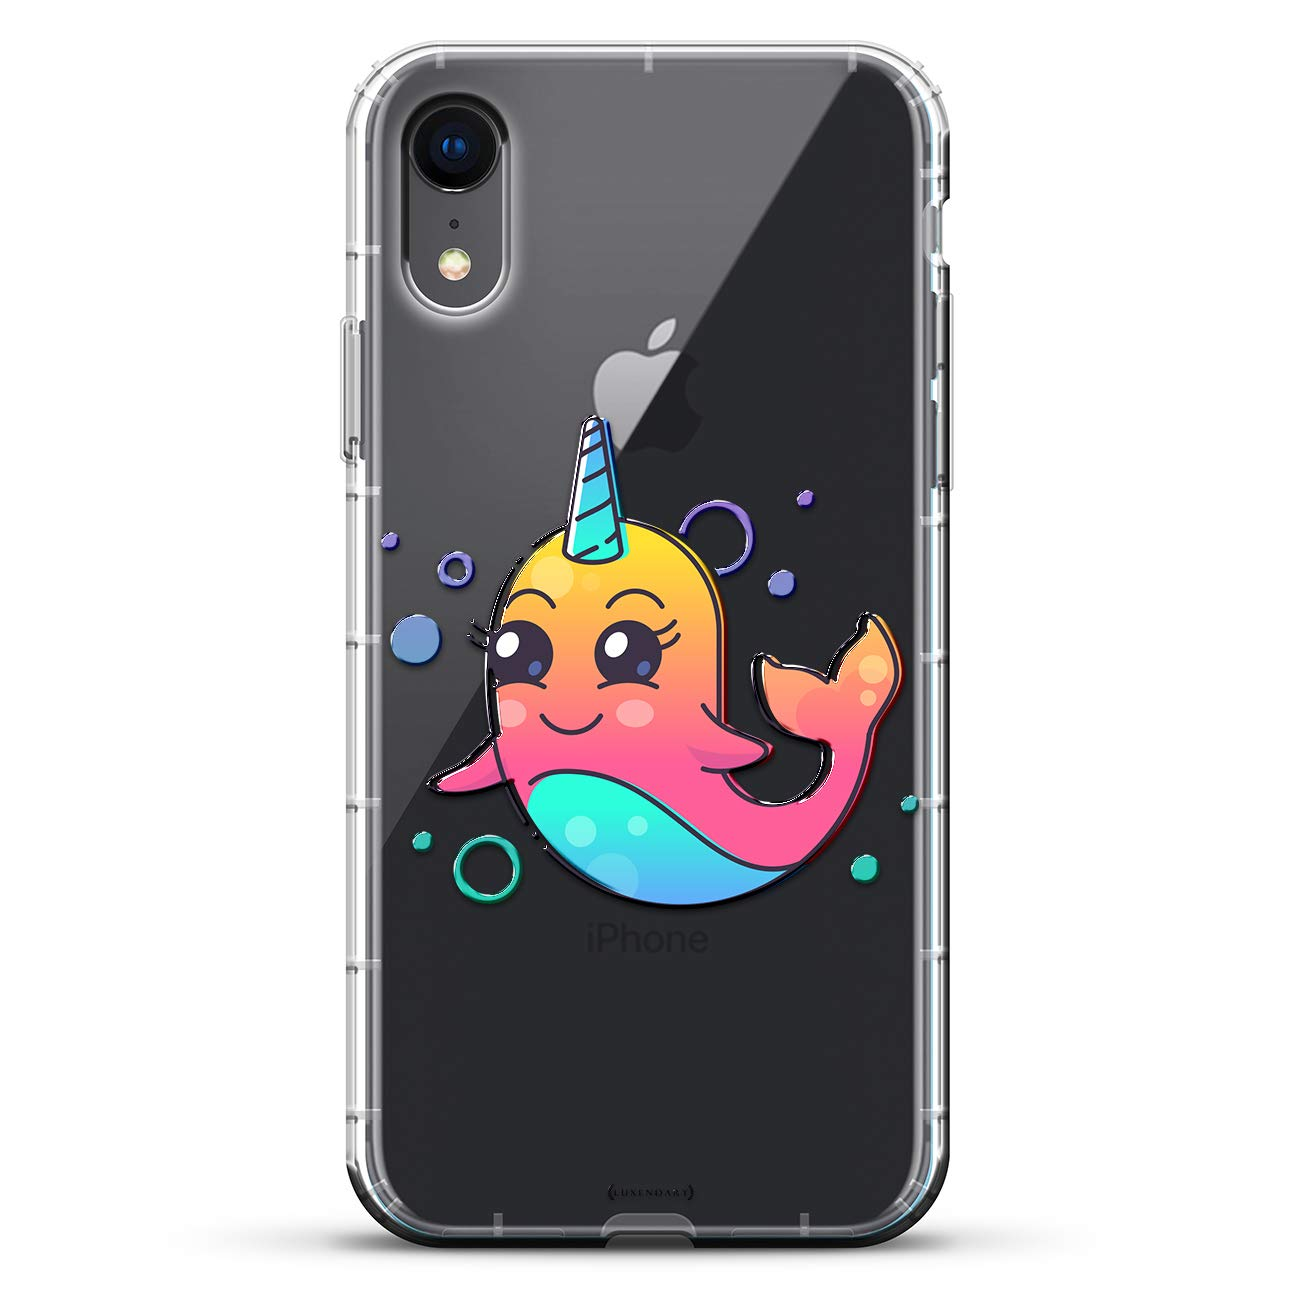 8e7da013aa Cute Unicorn Dolphin   Luxendary Air Series Clear Silicone Case with 3D  printed design and Air-Pocket Cushion Bumper for iPhone XR (new 2018/2019  model with ...